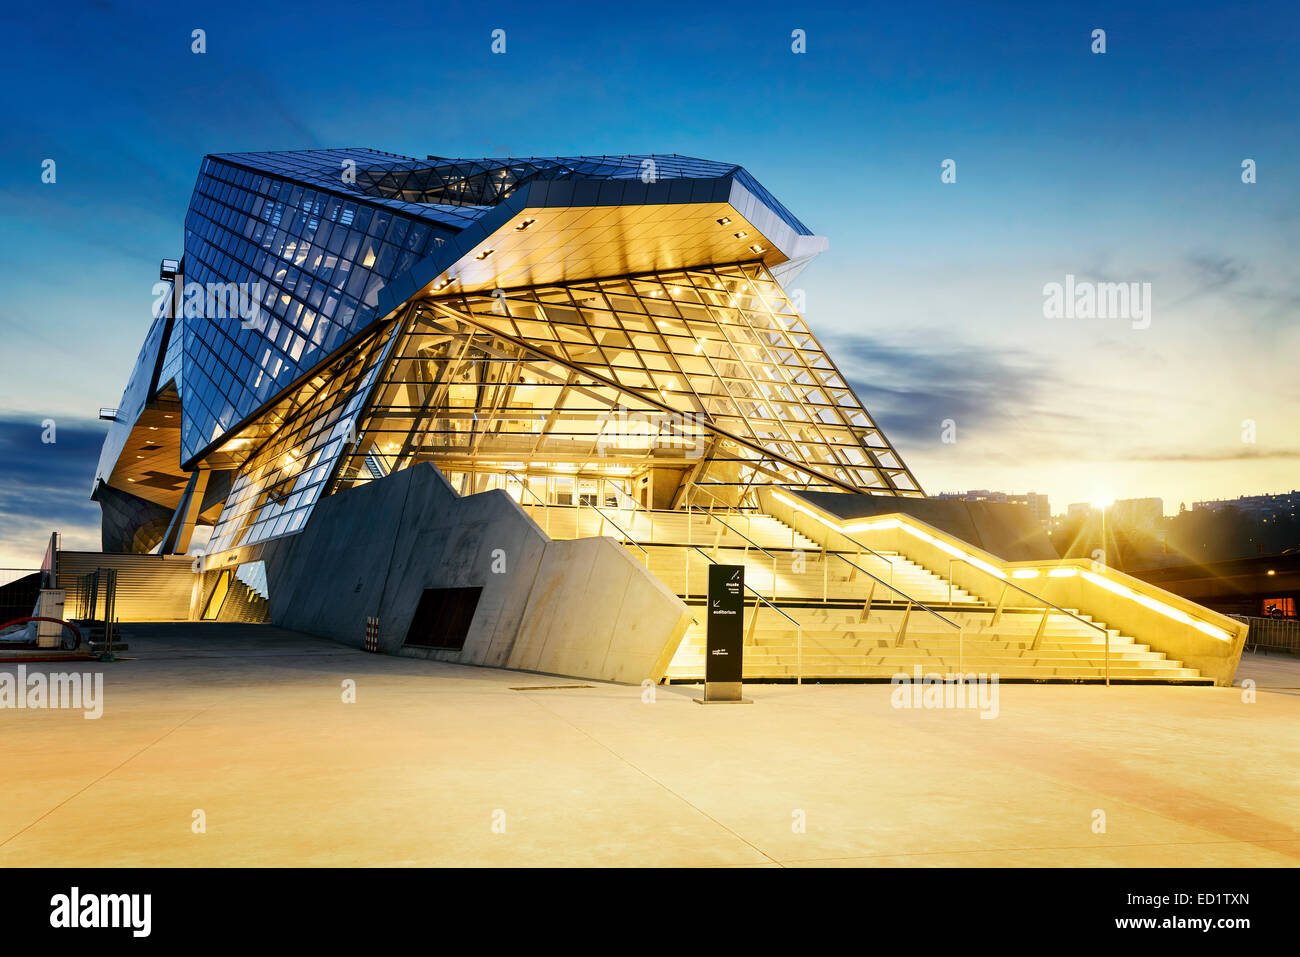 Confluences museum in Lyon city buy sunset, - Stock Image